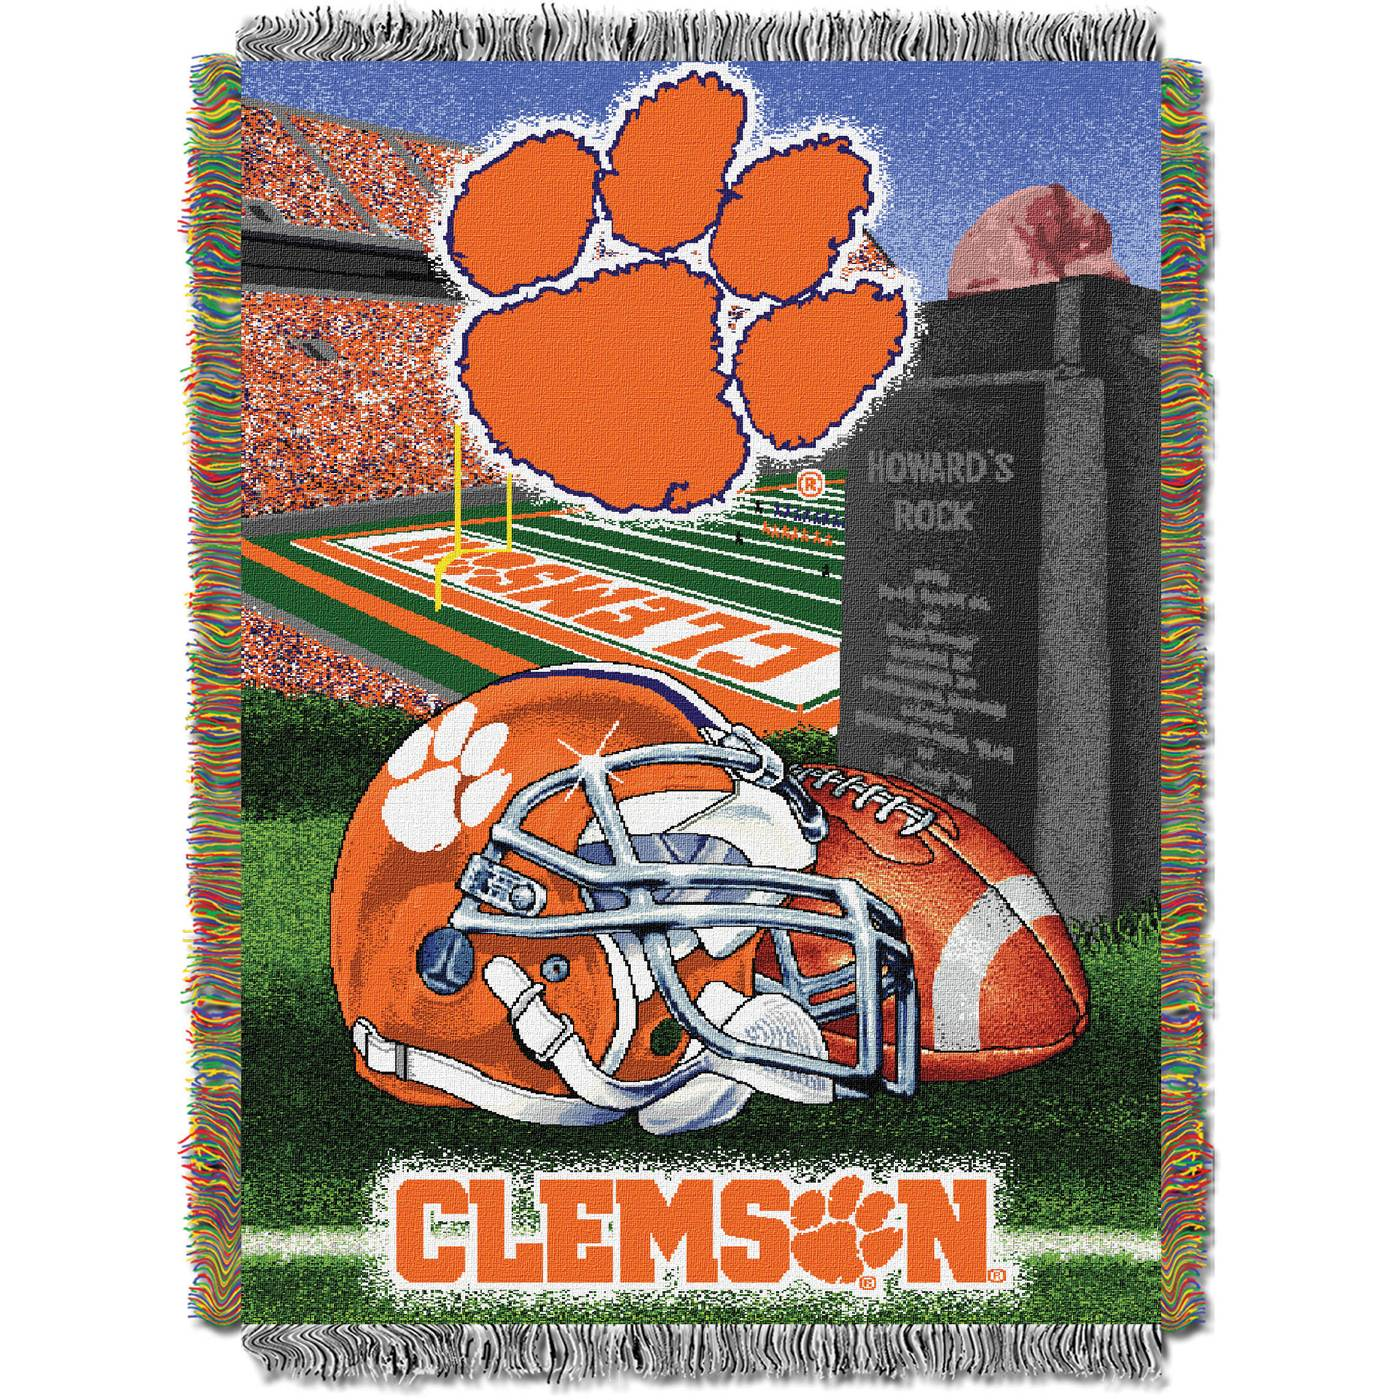 Ncaa Clemson Tigers Full Bed Set Orange Cotton Bedding: Clemson Tigers NCAA Woven Tapestry Throw Blanket